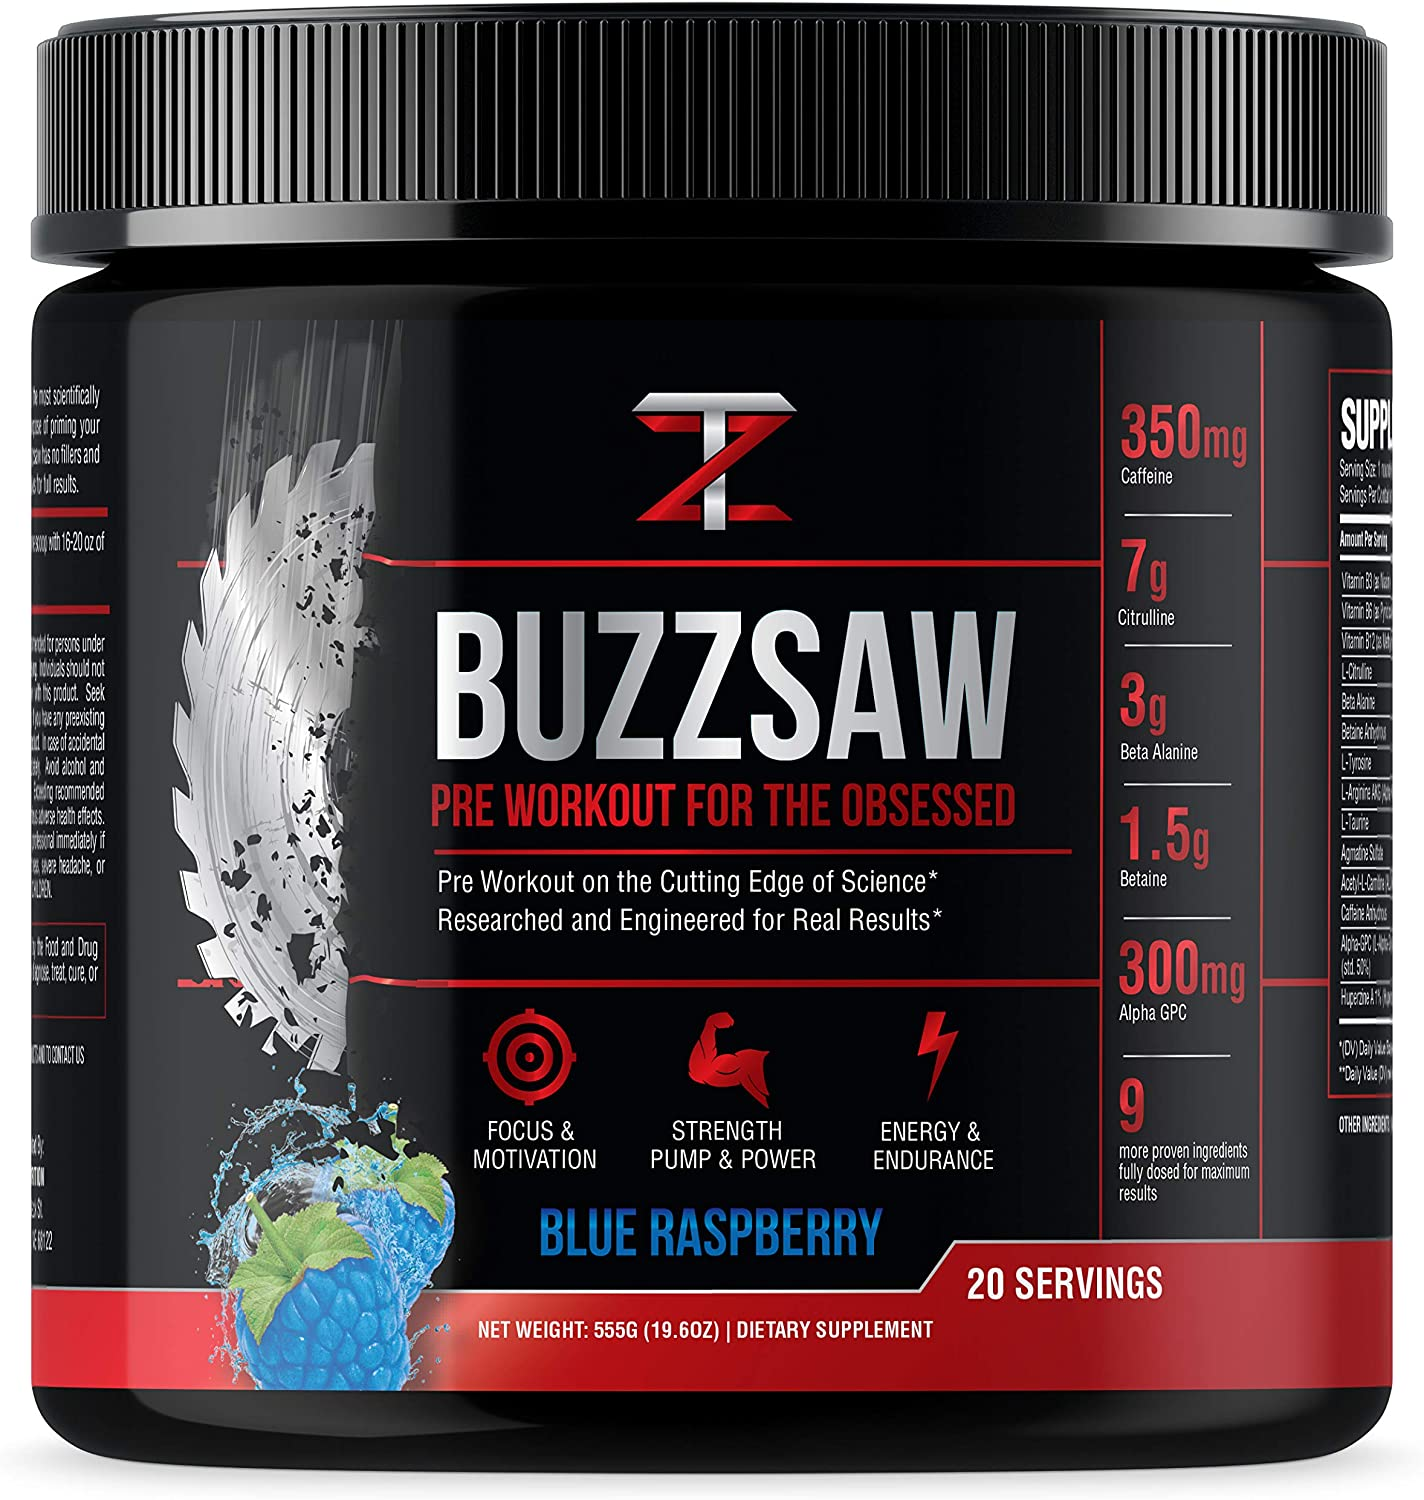 Buzzsaw from TZ Nutrition – Pre Workout For The Obsessed – DO NOT TAKE TWO SCOOPS